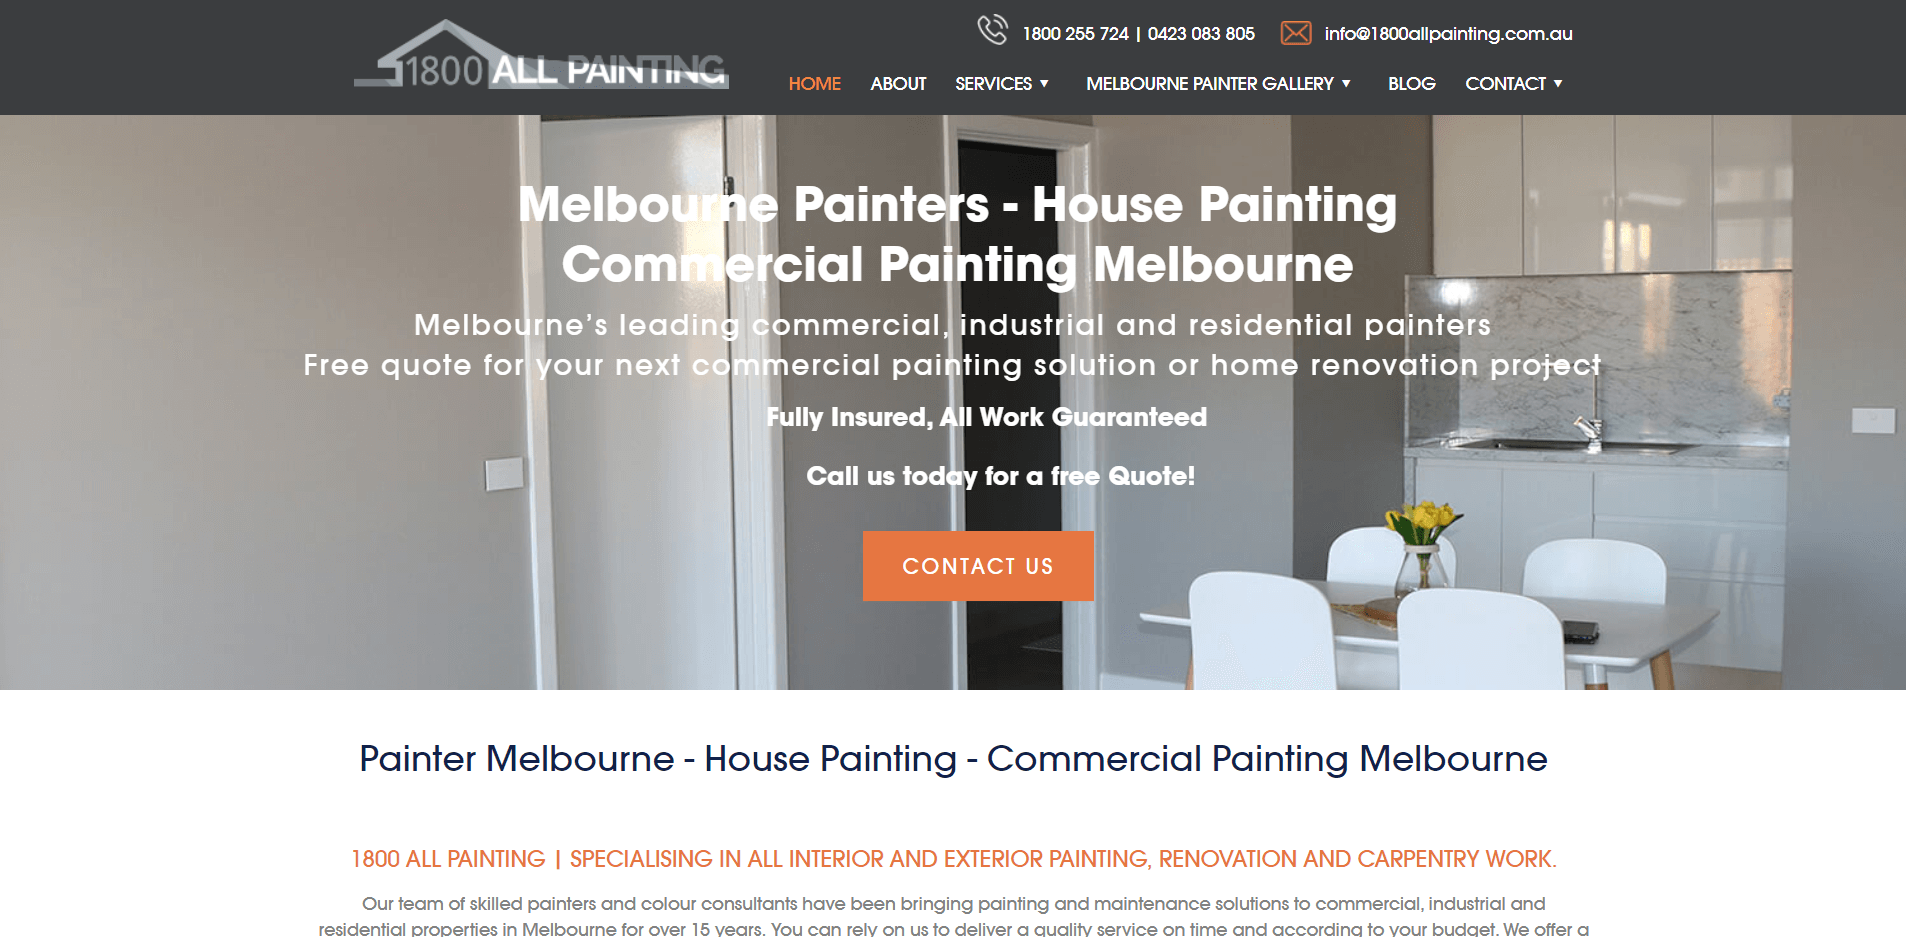 1800 all painting